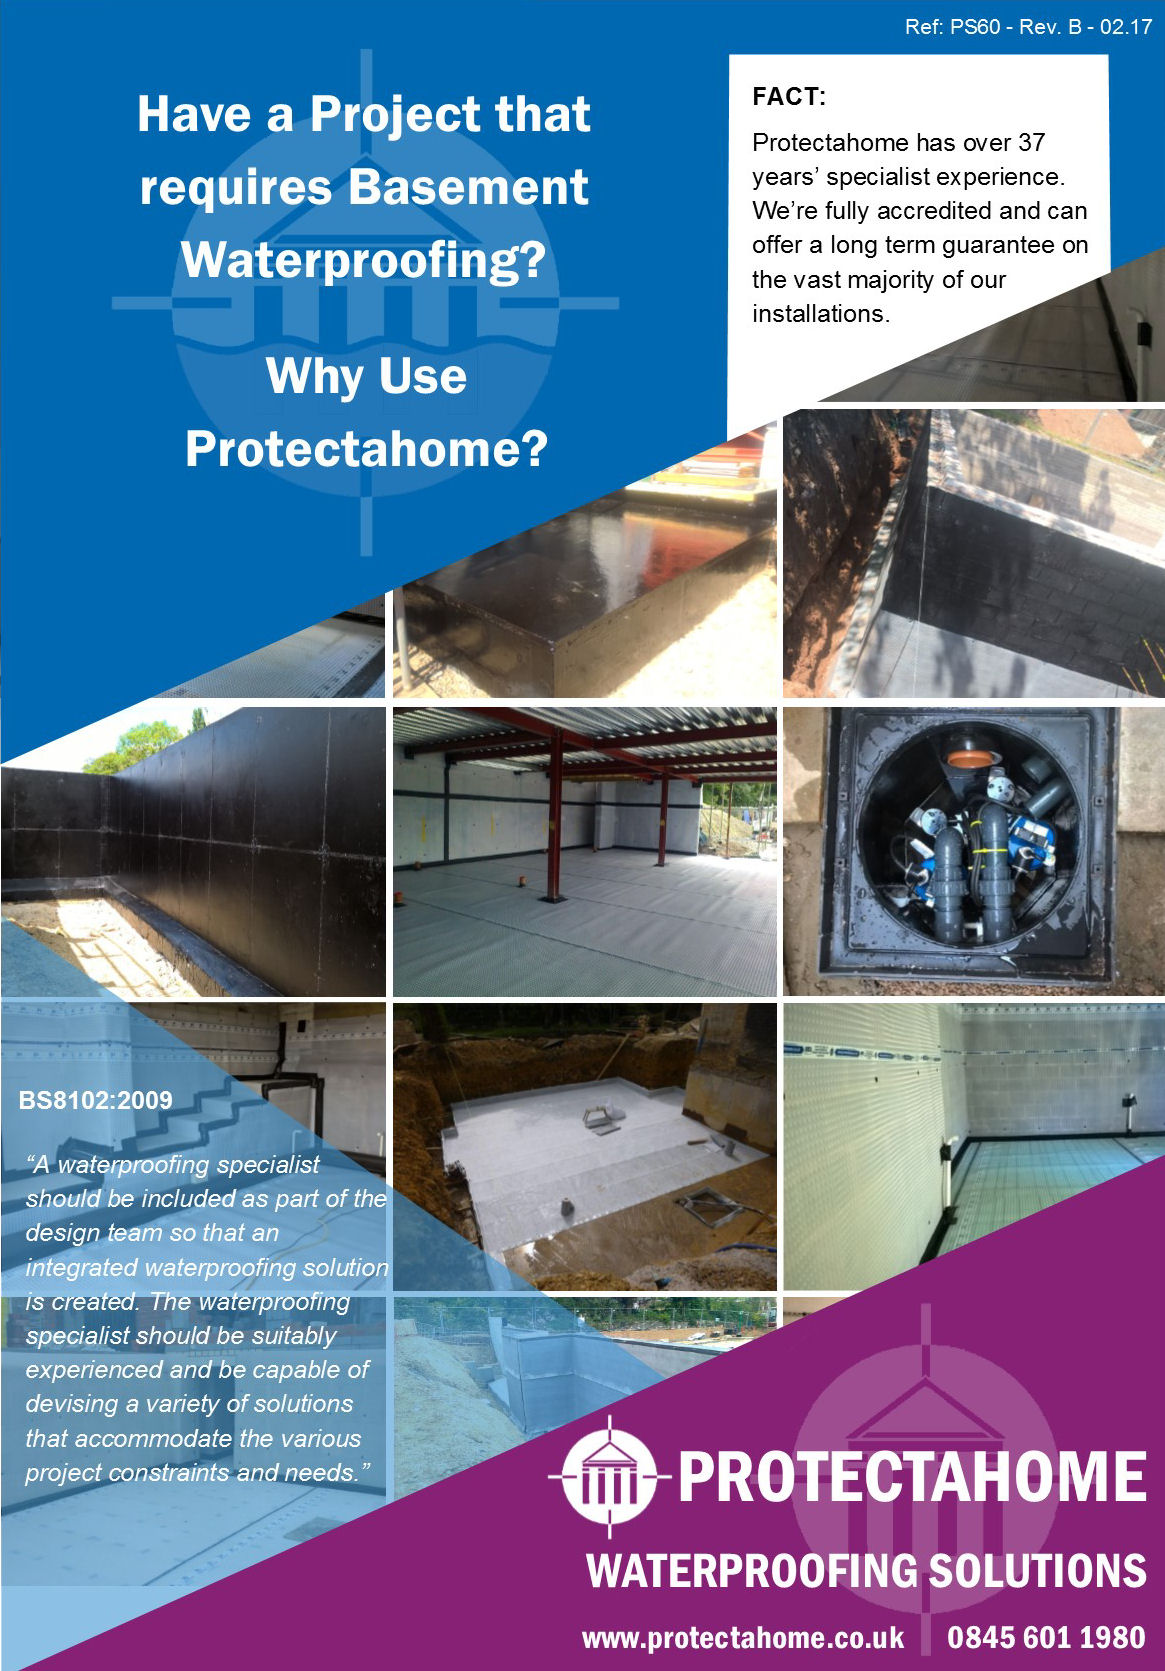 Cellar Waterproofing Specialist